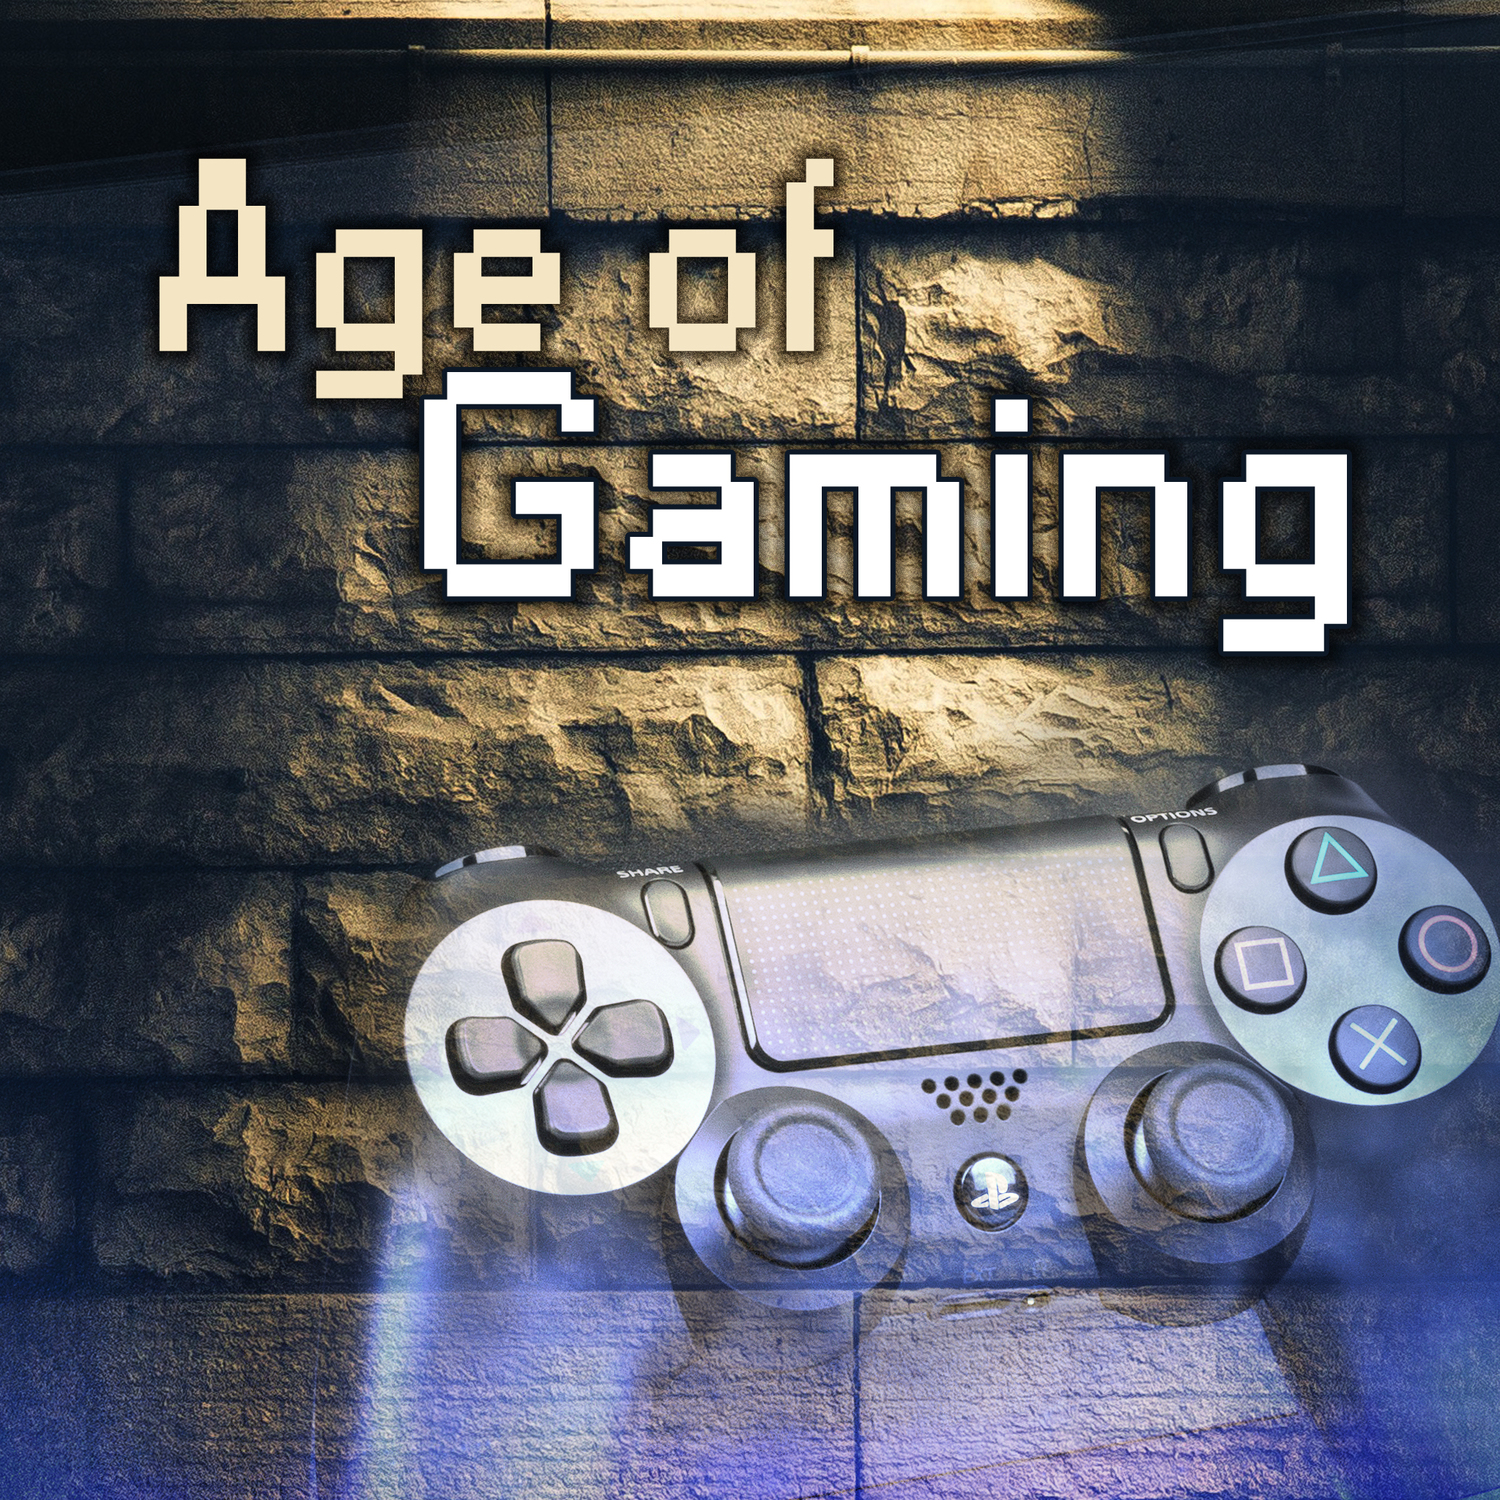 Age of Gaming - Discussion of PC, PS4 & Console Video Games - Starwalker Studios